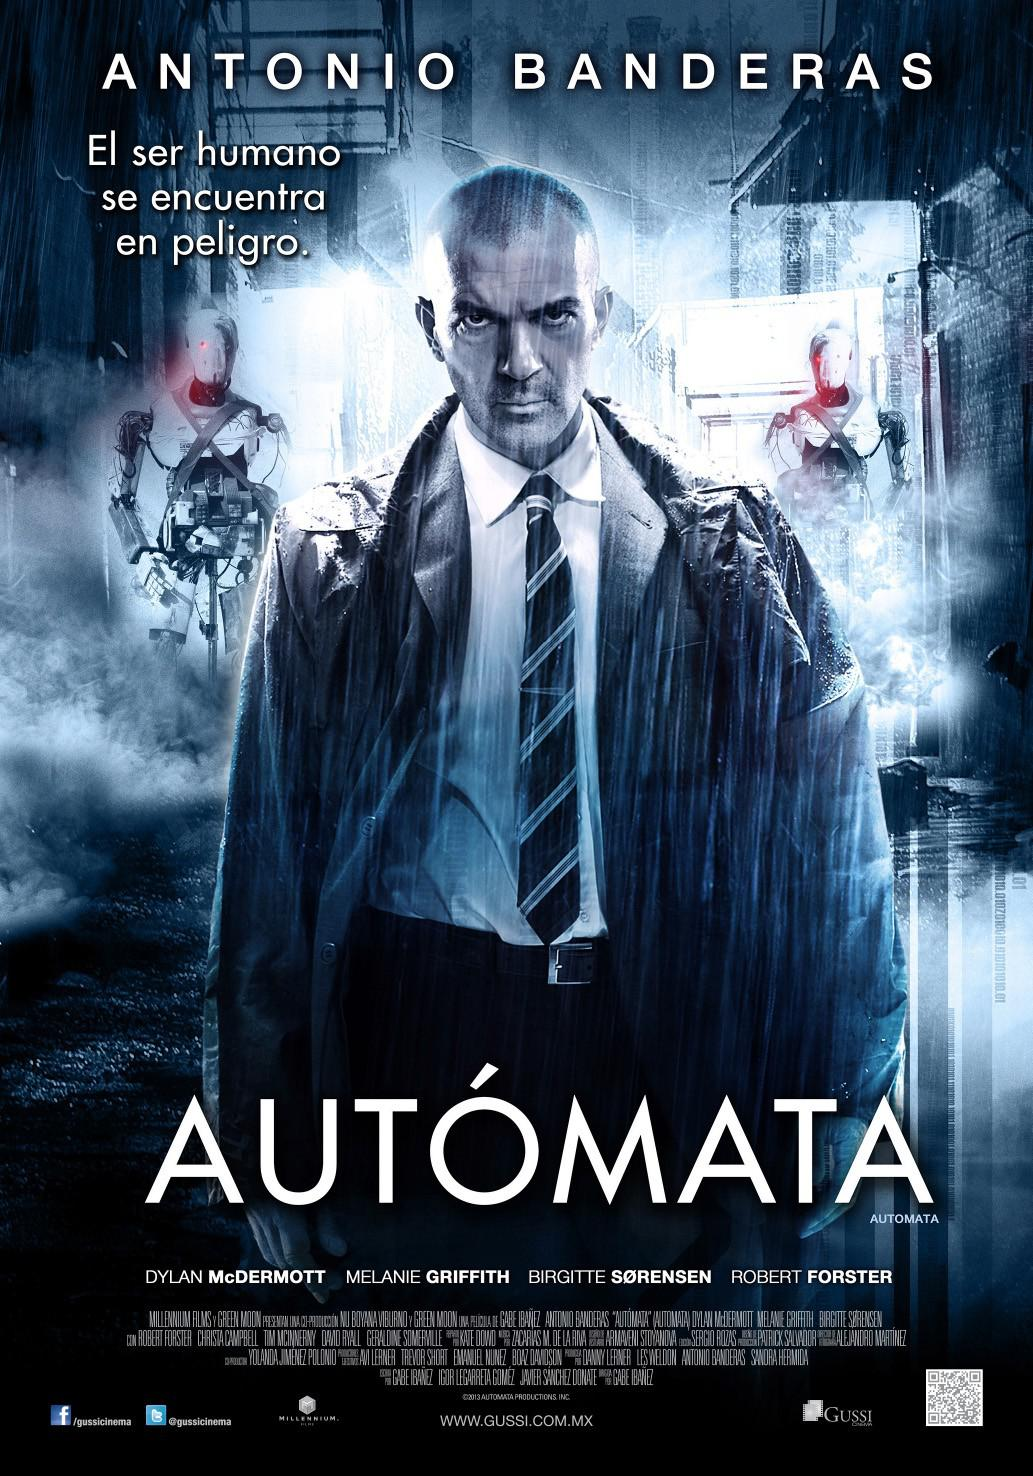 Automata - scifi film - your time is coming to an end ours is now beginning - Antonio Banderas